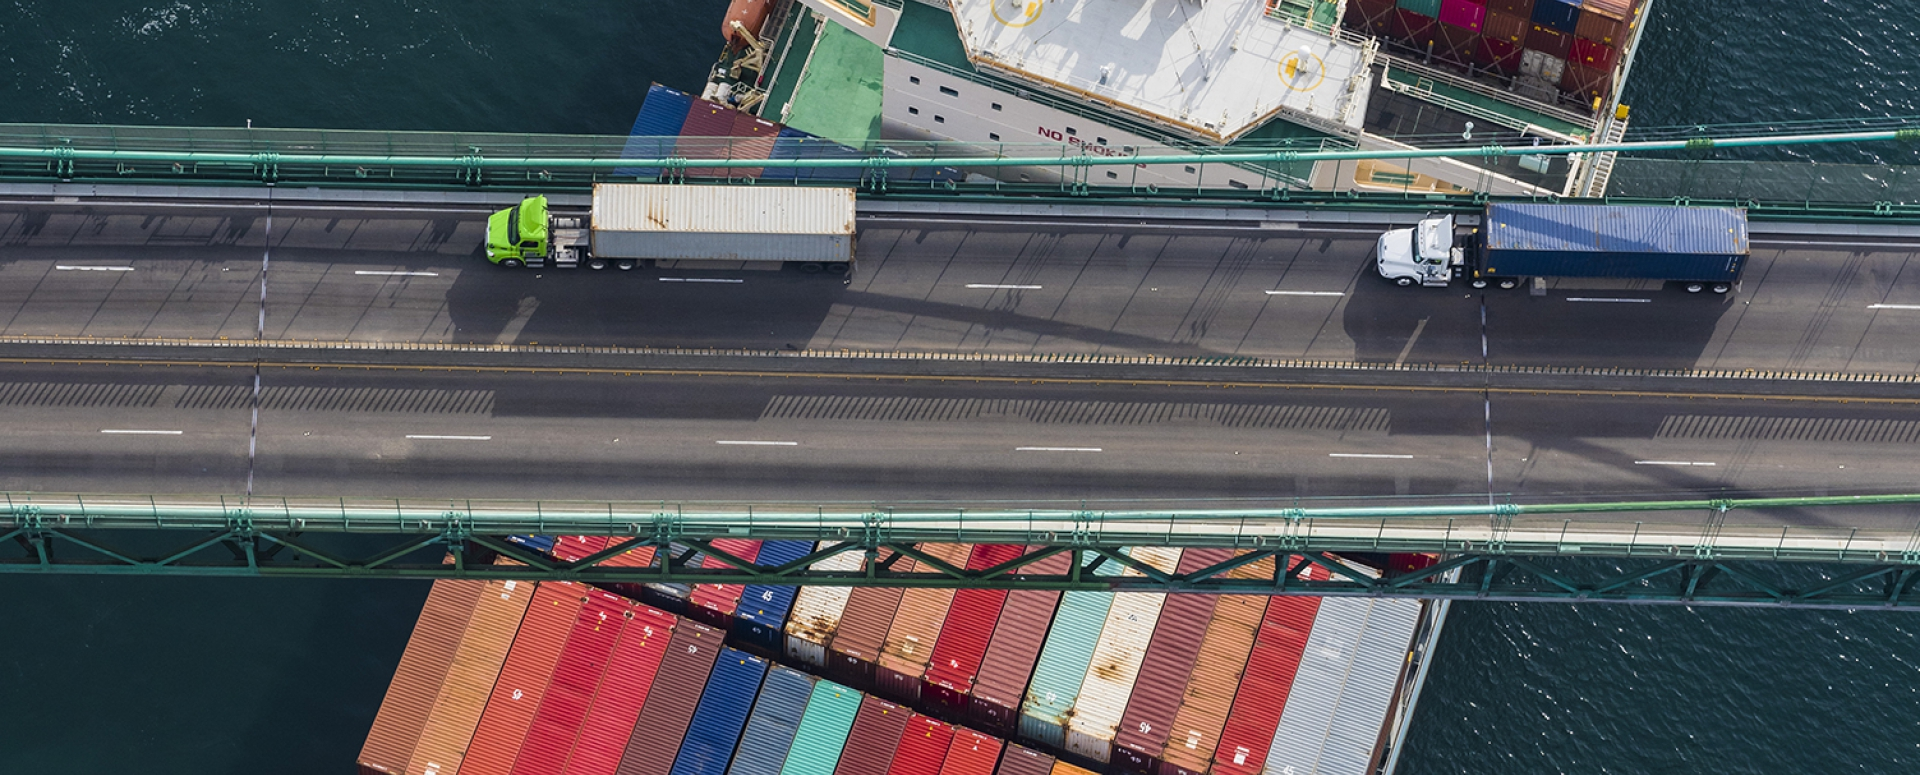 ey_recommends_cargo_ship_trucks